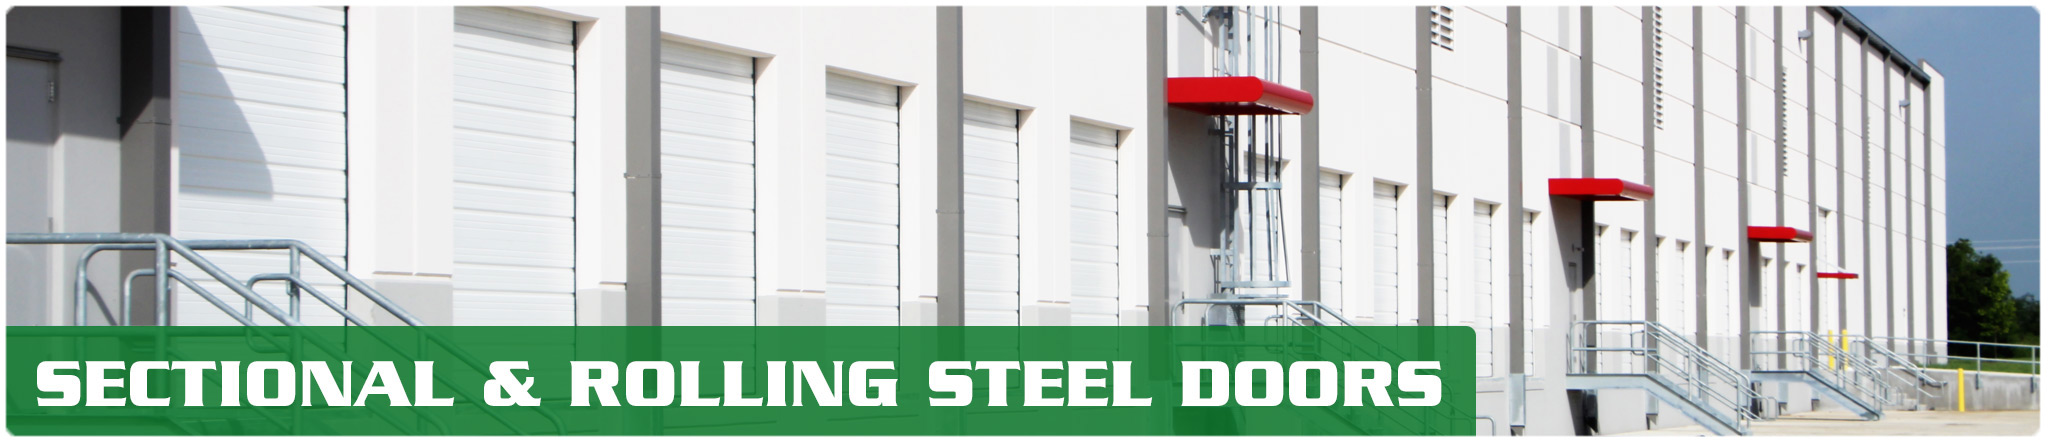 Rolling steel door on building - Sectional Dock Doors Are The Most Common Type Of Commercial Doors And Are Seen On Almost All Loading Docks We Sell Many Styles And Variations Of Sectional